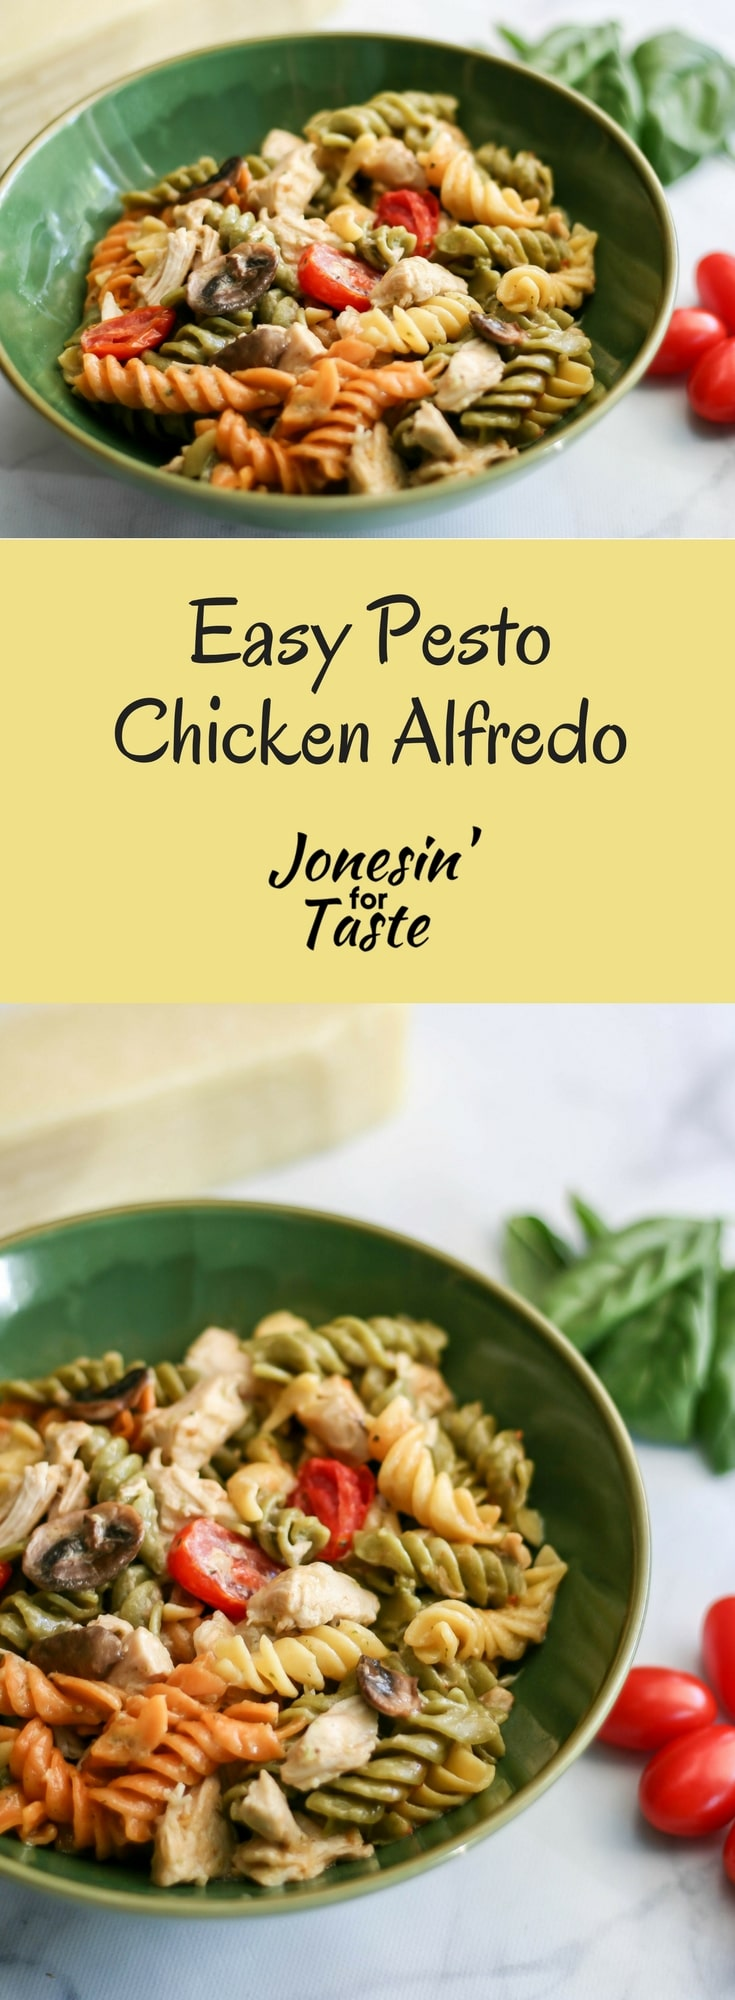 Easy Pesto Chicken Alfredo uses rotisserie chicken combined with pesto and alfredo sauce for a quick dinner packed with lots of flavor. #easypastarecipes #pestopasta